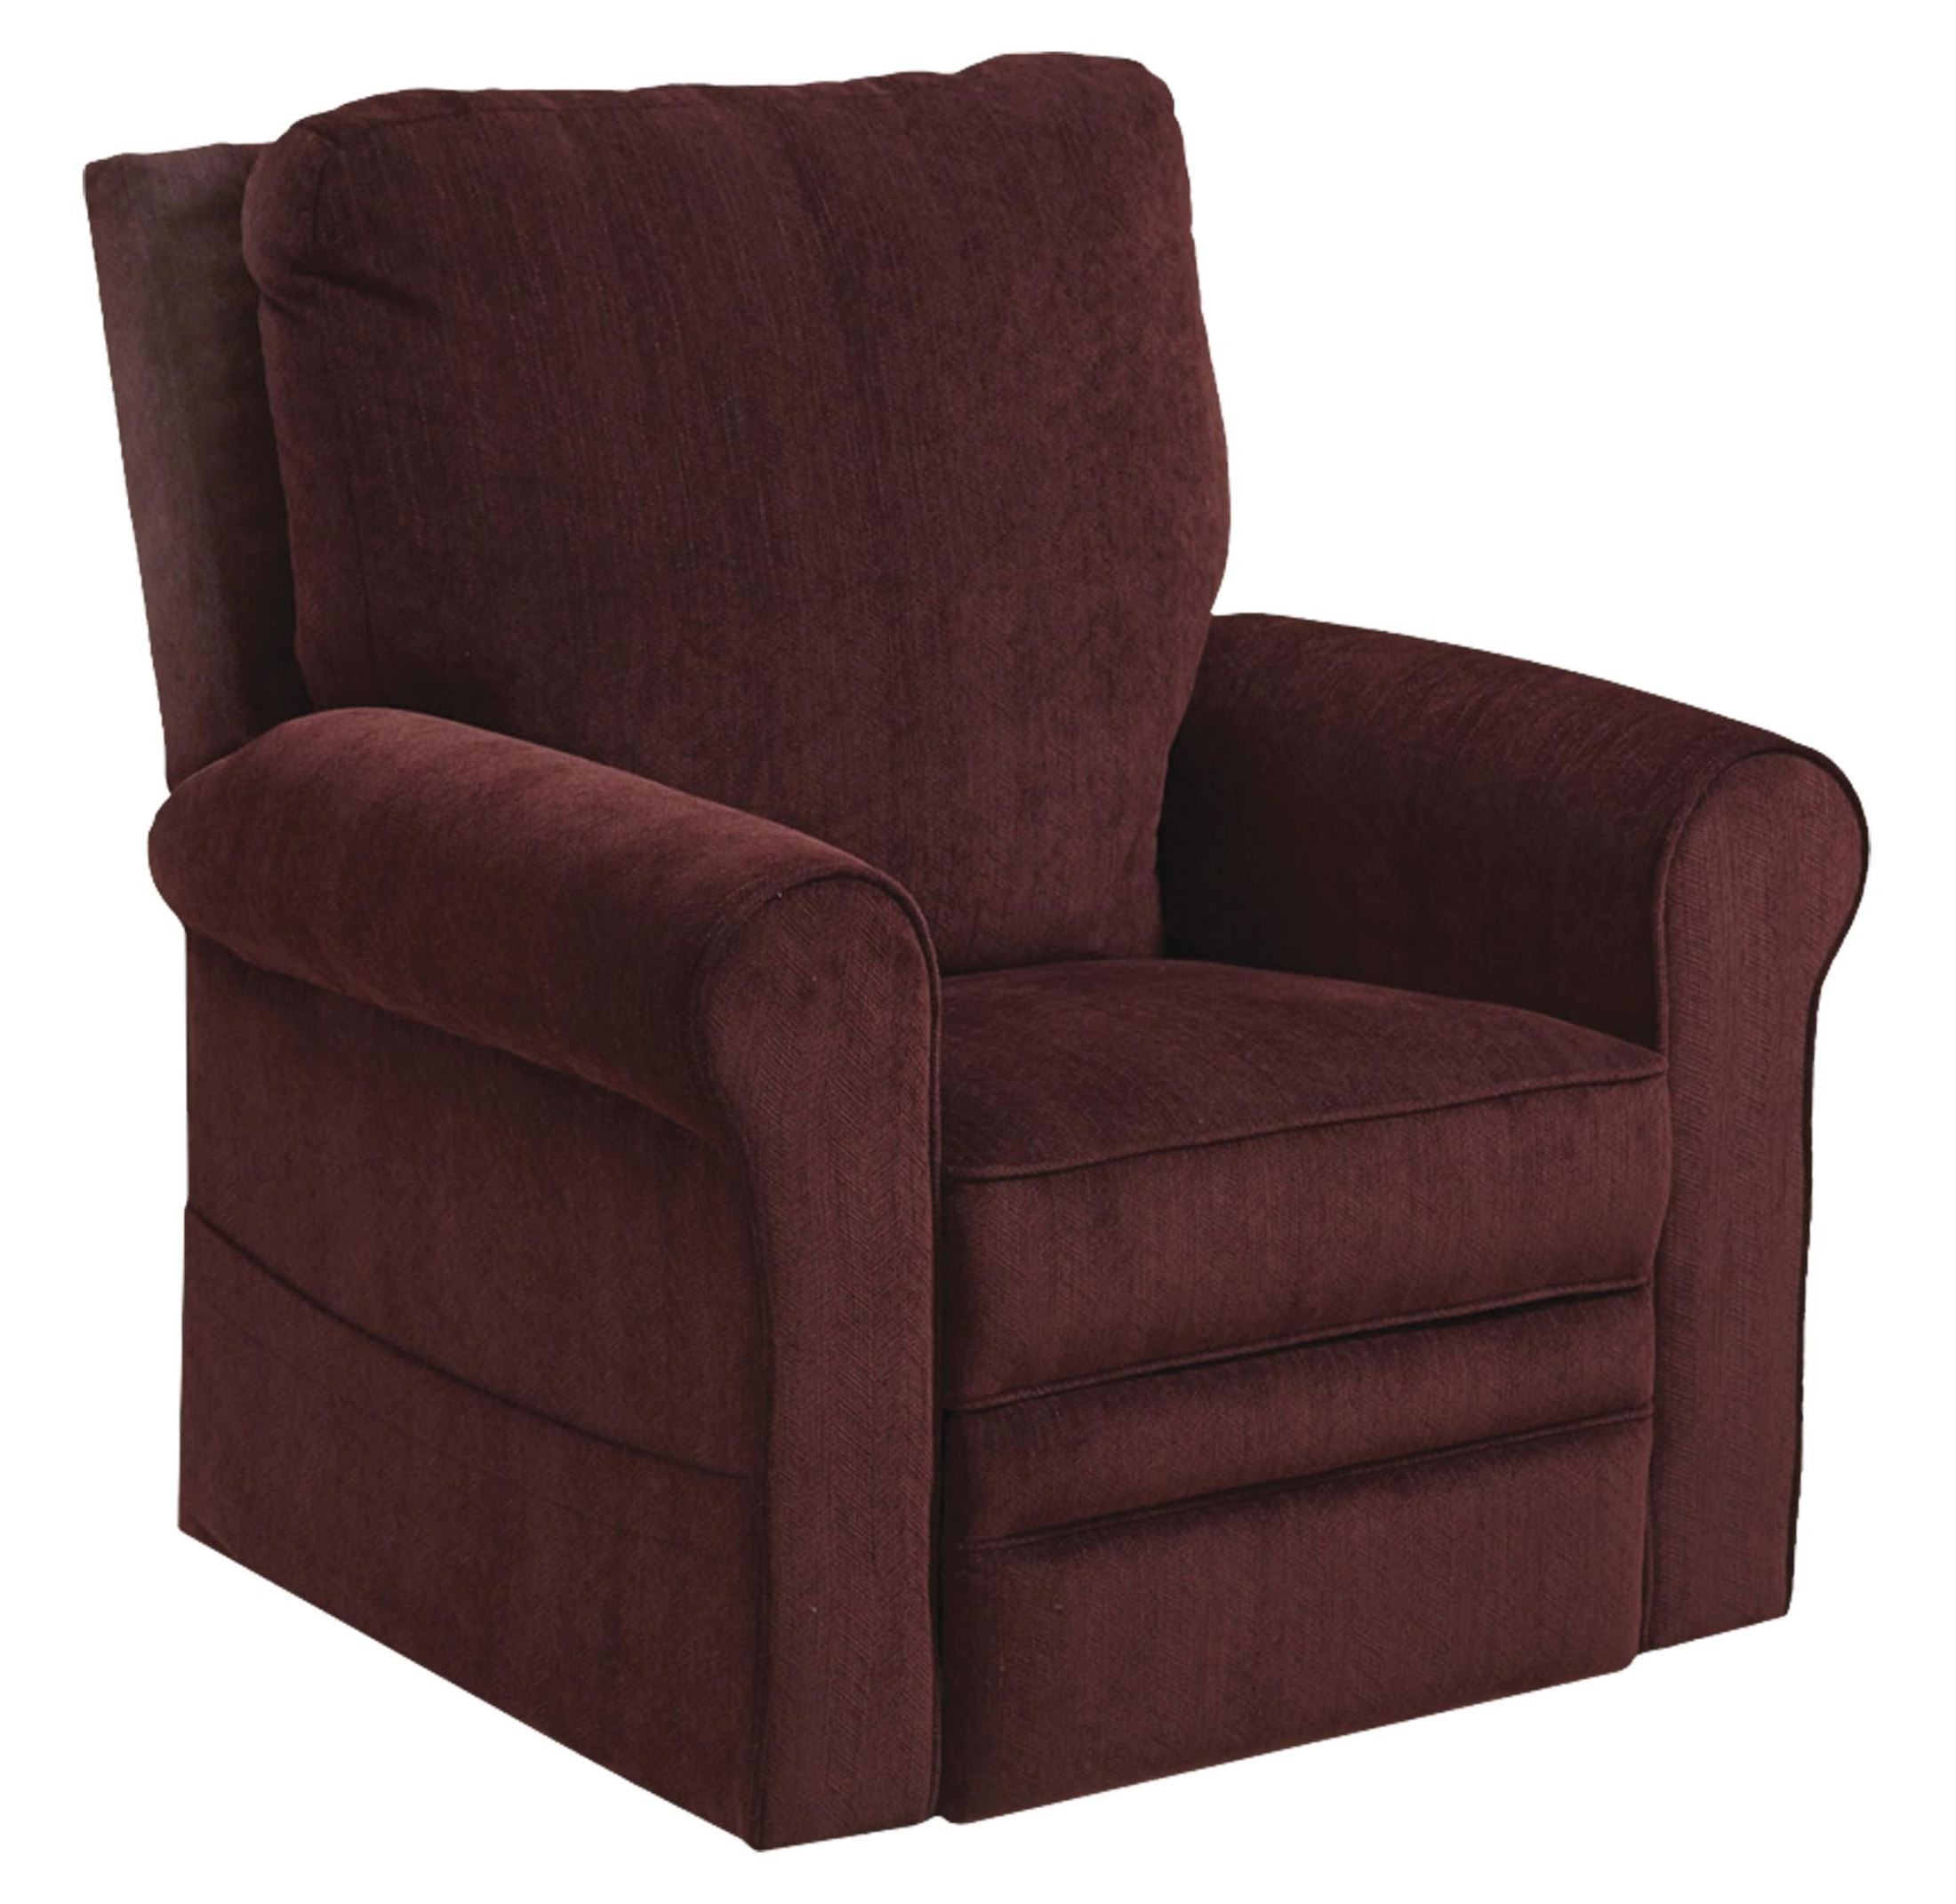 Edwards plum power lift recliner from catnapper for Catnapper cloud nine chaise recliner